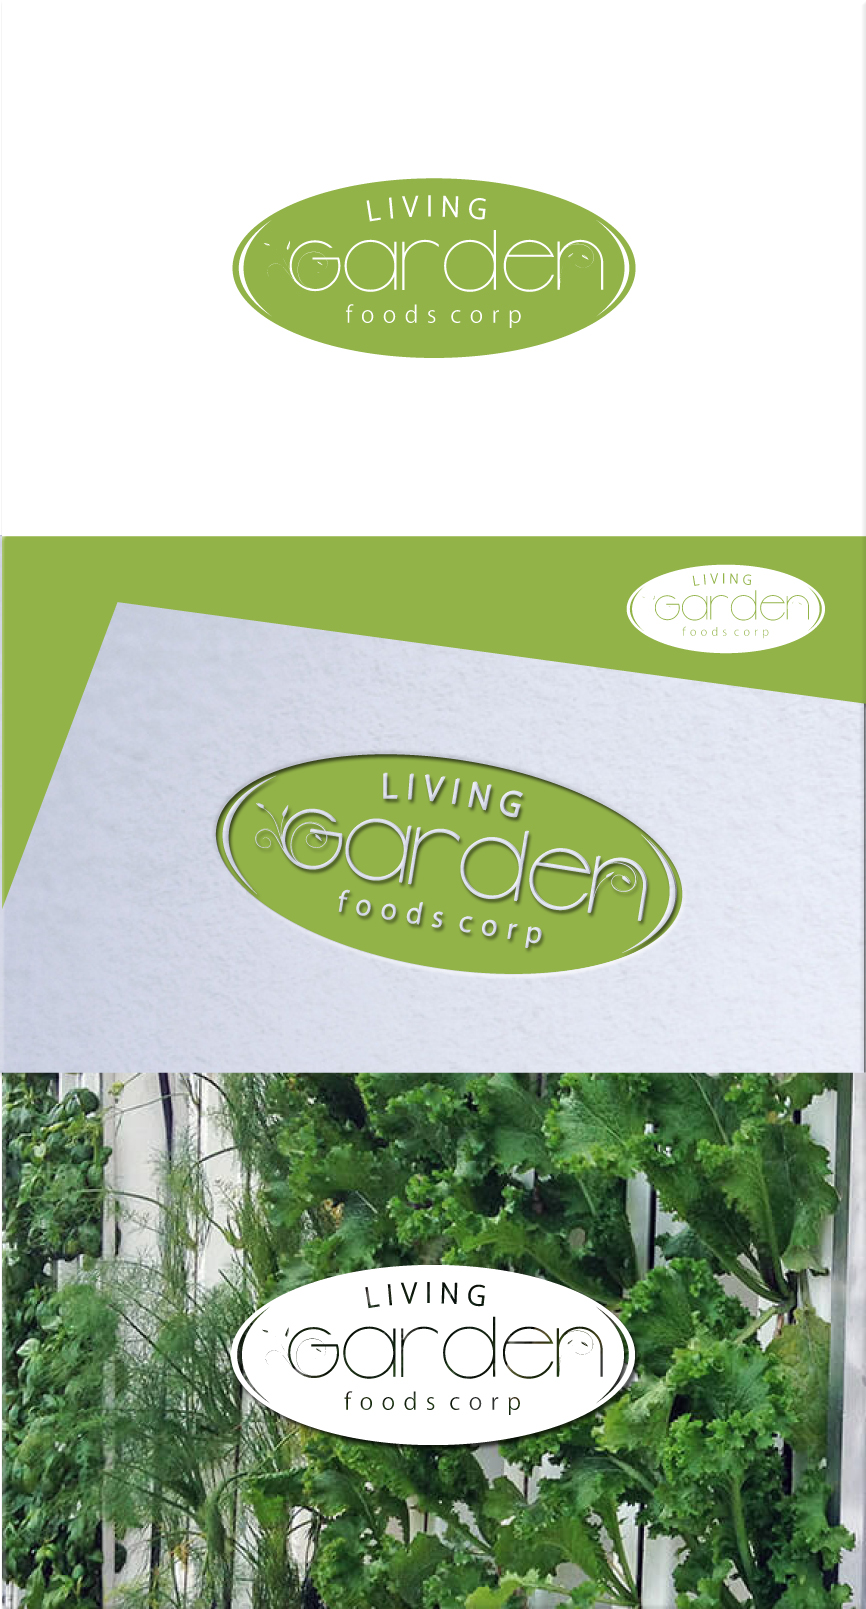 Logo Design for Vertical Farming Business - Living Garden ... on sustainable permaculture, calendar design, sustainable landscapes and gardens, sustainable rooftop gardens, sustainable community gardens, sustainable urban drainage systems, small dairy farm design, sustainable garden supply, sustainable organic farming, low water front yard design, sustainable landscape principles, green building design, sustainable travel, sustainable vegetable garden, sustainable roof garden, sustainable living garden, sustainable garden home, sustainable environment, sustainable landscape professional, building entrance design,